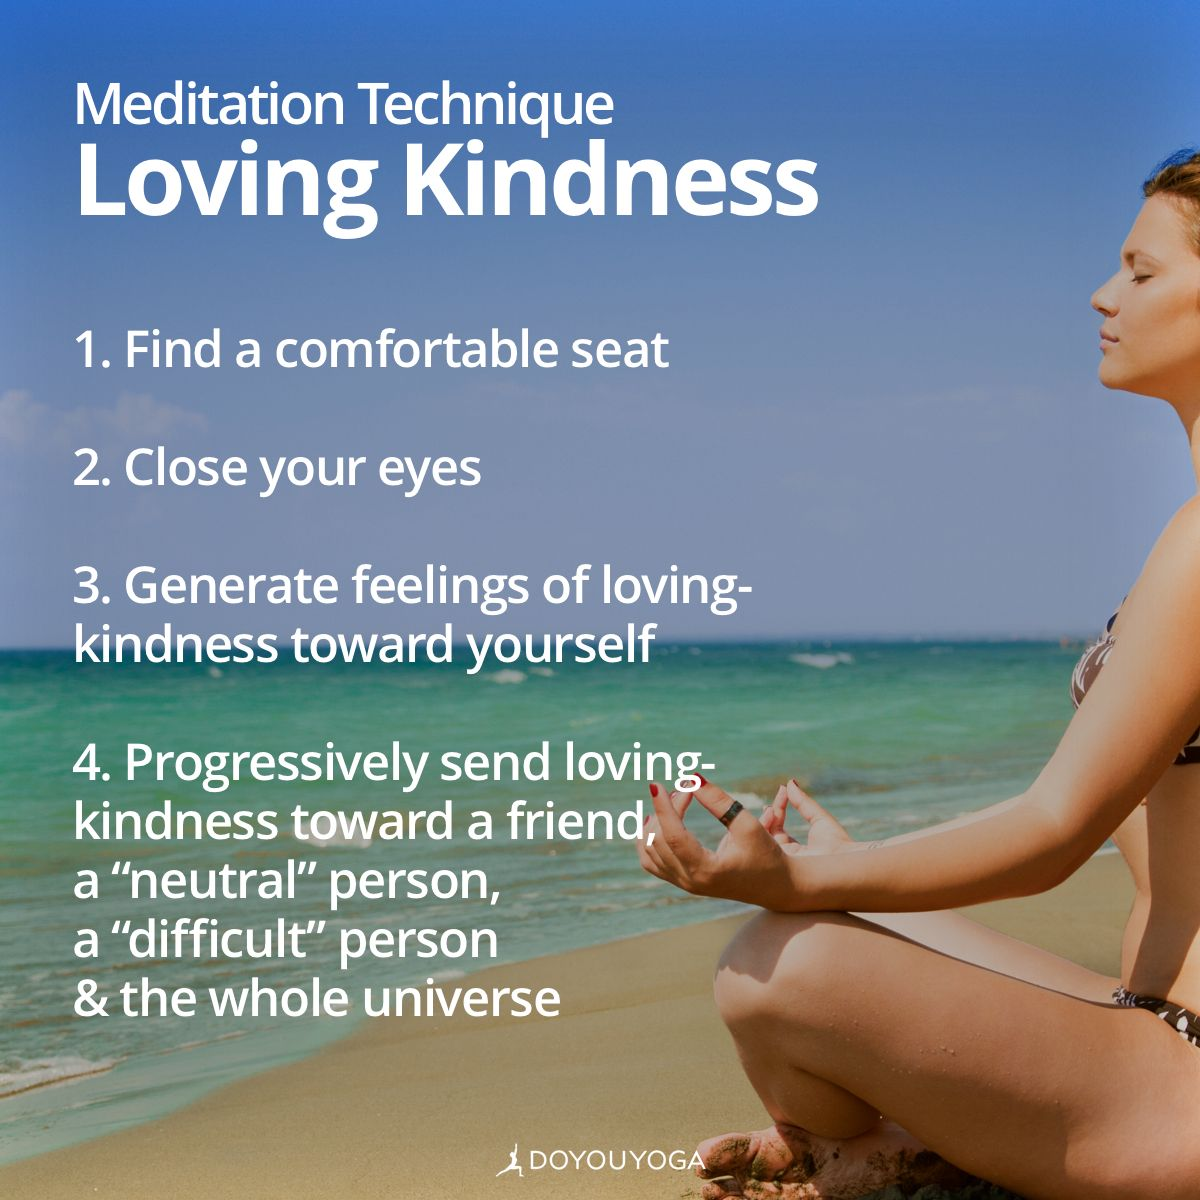 Meditate by sending out loving-kindness and receive it ten-fold in return